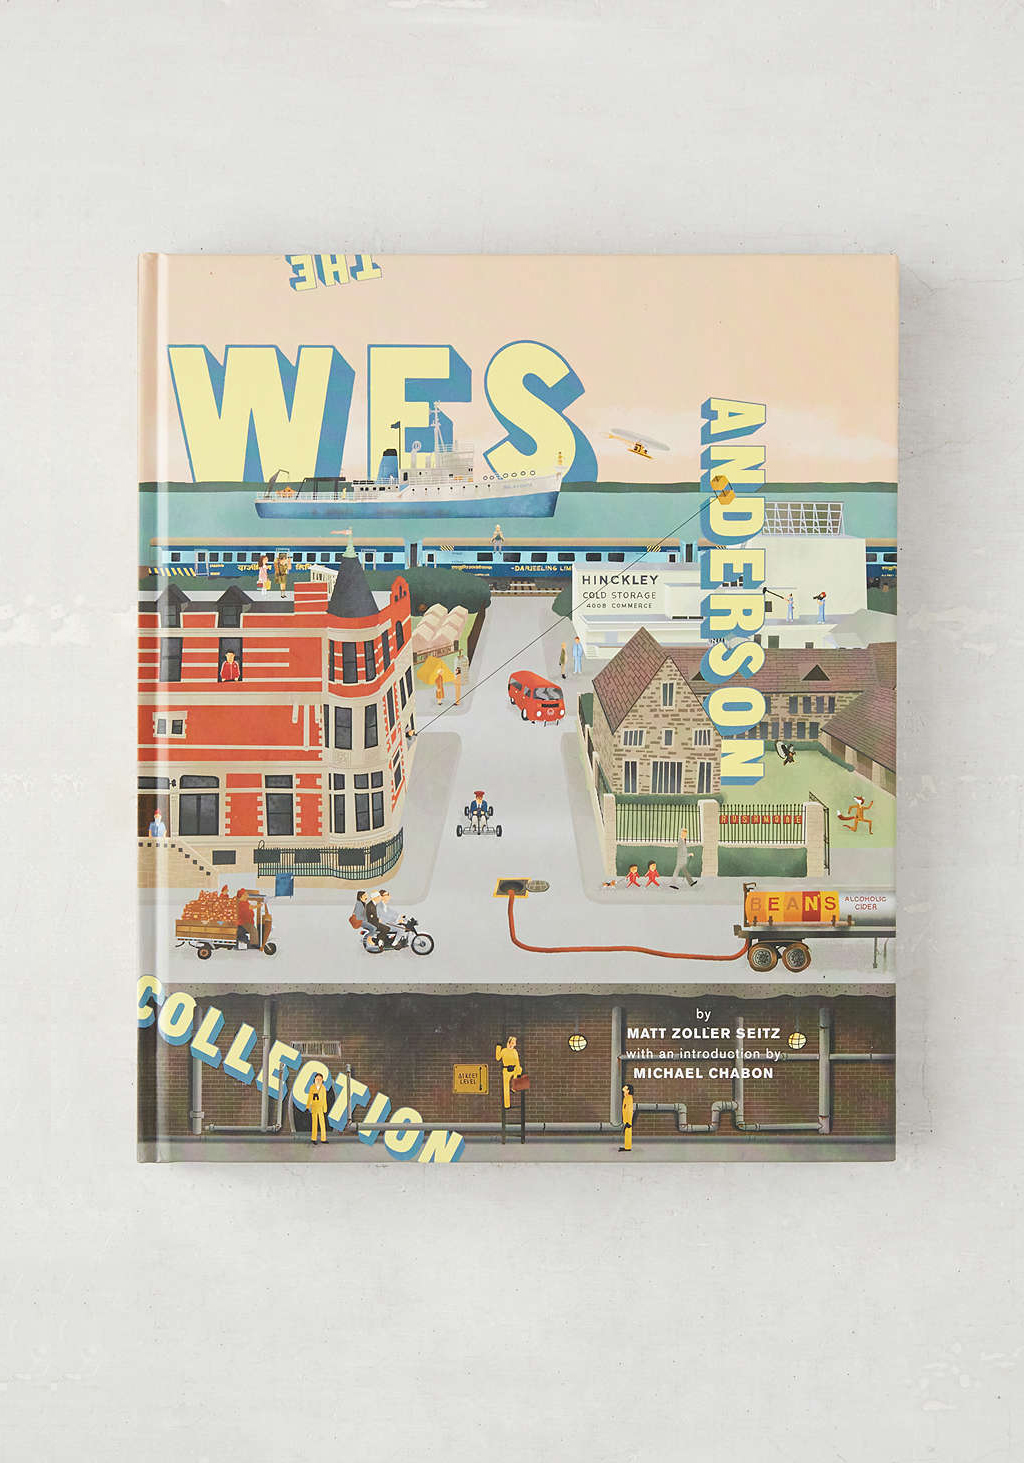 Clay stapp co residential real estate broker dallas tx - Wes anderson coffee table book ...